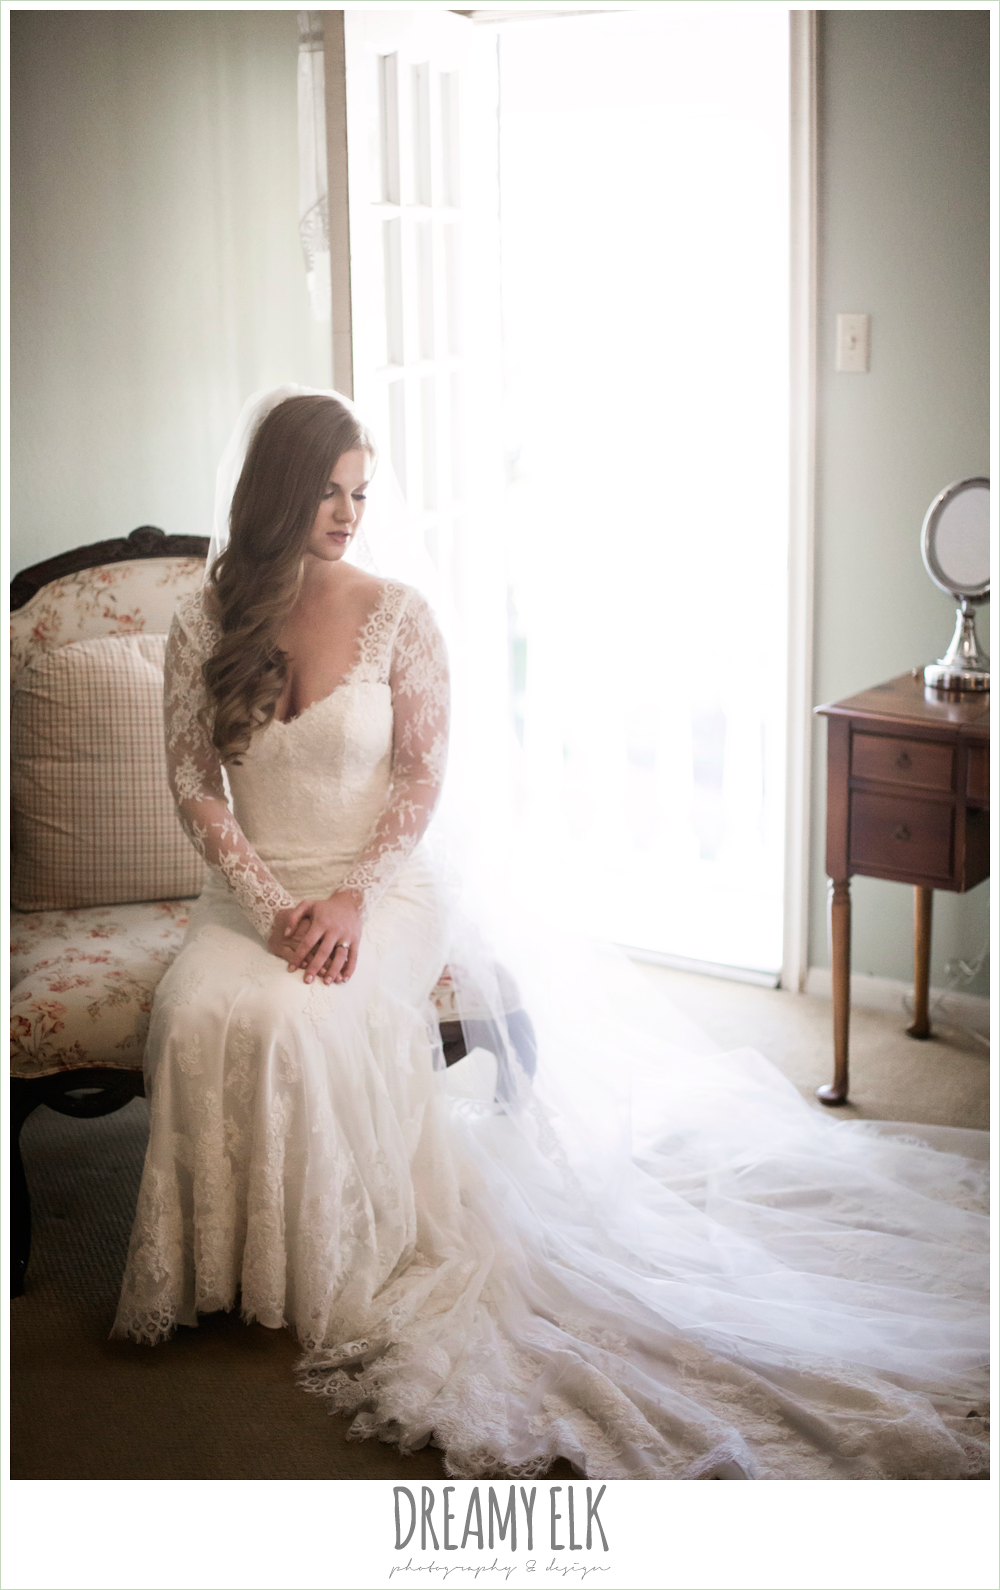 inside bridal portrait, wedding hair down, long sleeve lace wedding dress, morning winter january wedding, ashelynn manor {dreamy elk photography and design}